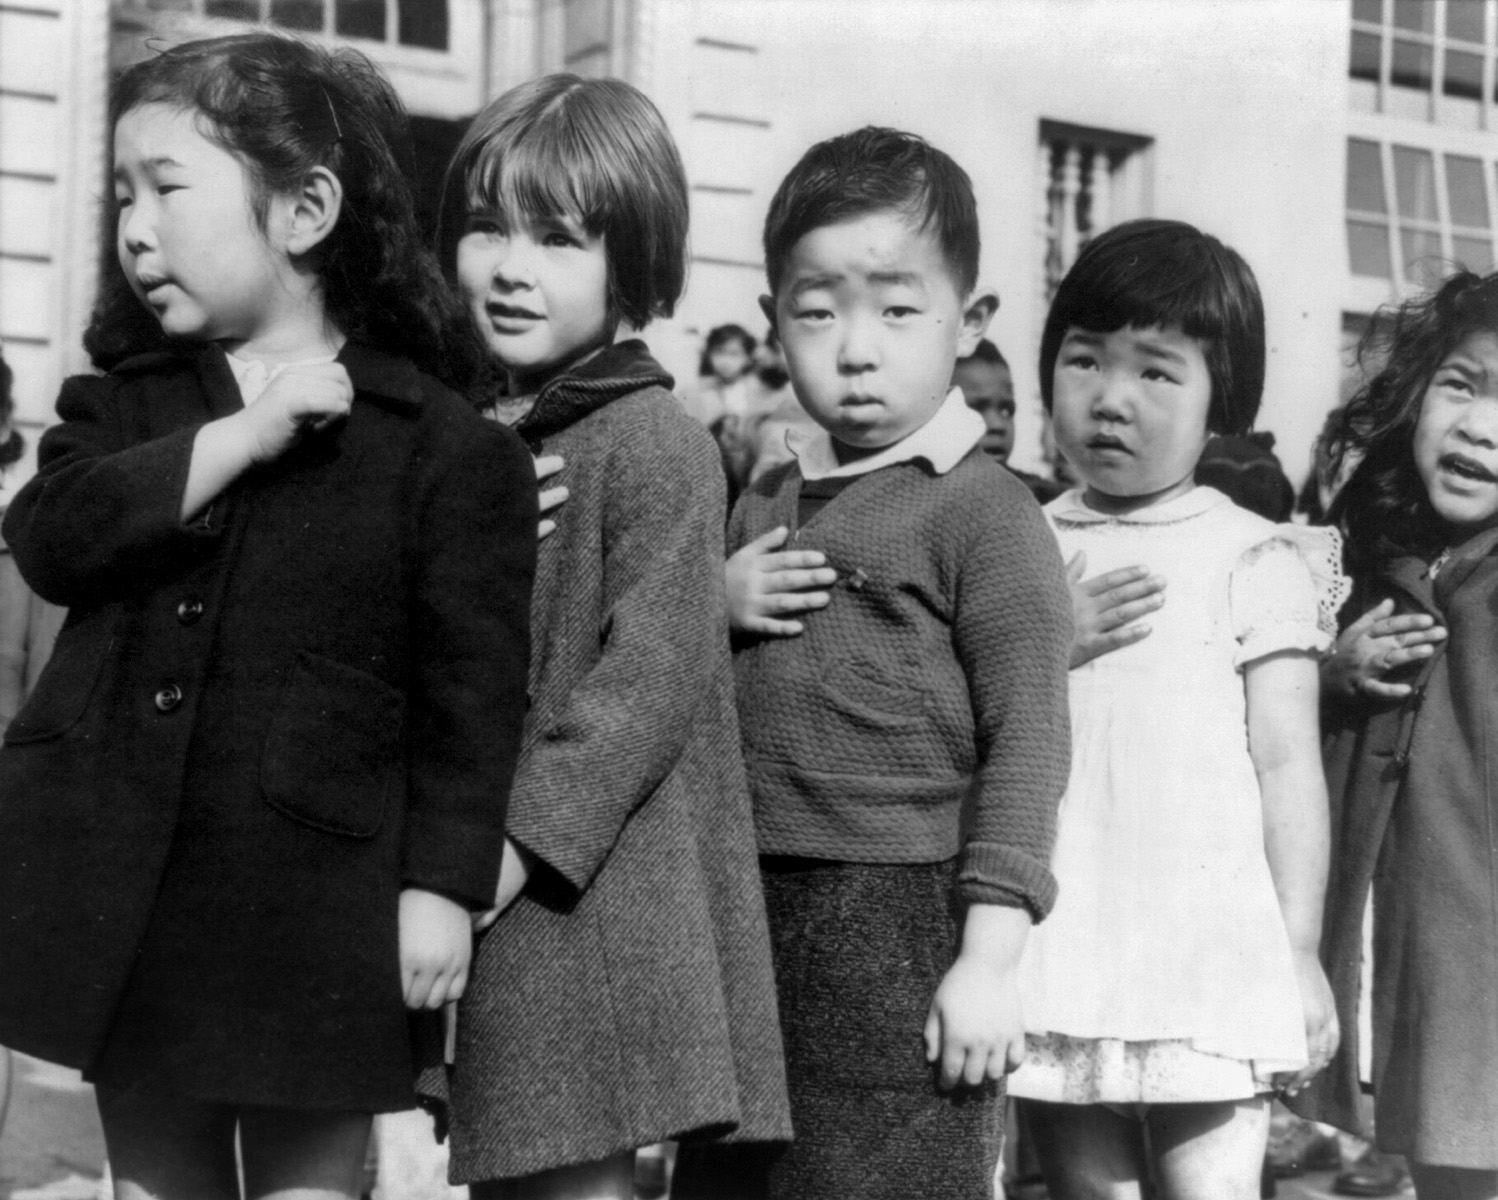 First-graders, some of Japanese ancestry, at the Weill public school, San Francisco, Calif., pledging allegiance to the United States flag. (1942, photo by Dorothea Lange).